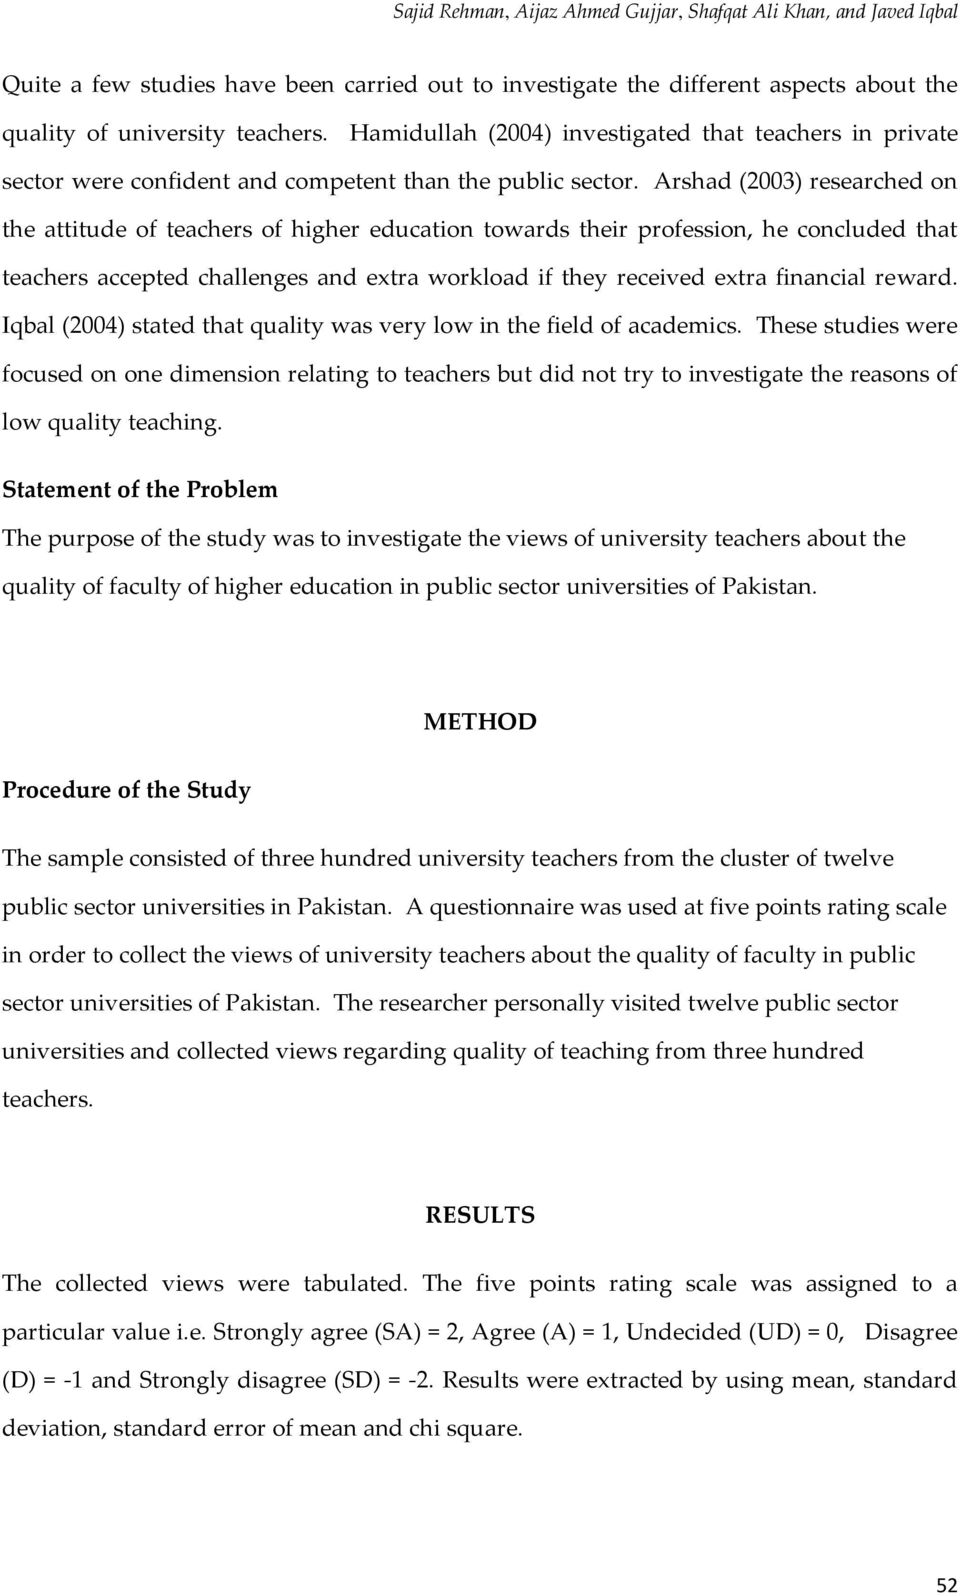 Arshad (2003) researched on the attitude of teachers of higher education towards their profession, he concluded that teachers accepted challenges and extra workload if they received extra financial